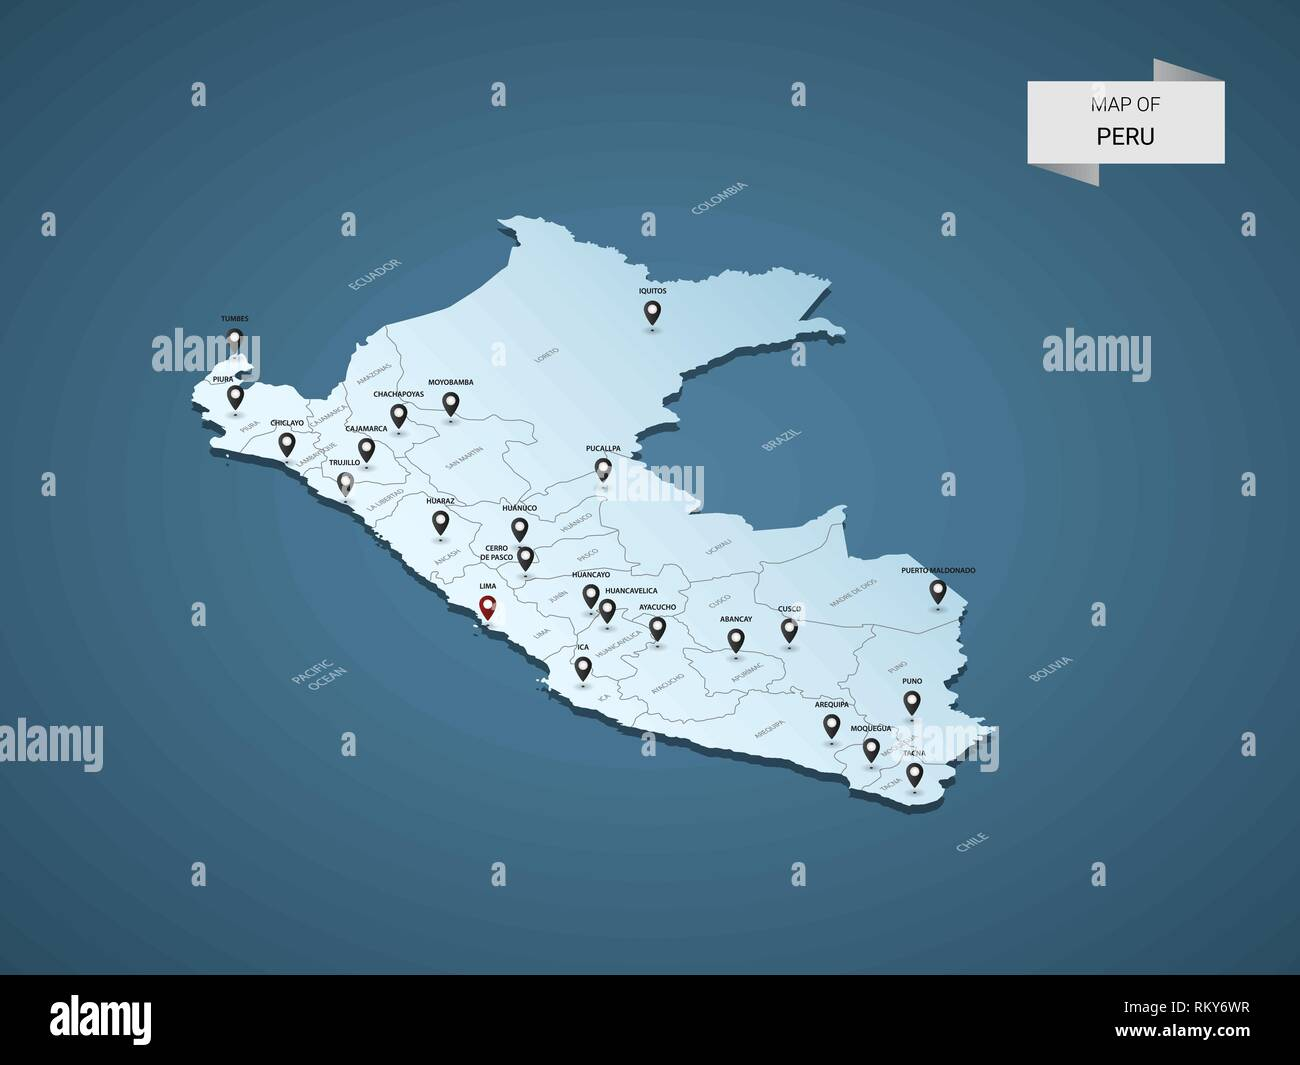 Peru Map Cities.Isometric 3d Peru Map Vector Illustration With Cities Borders